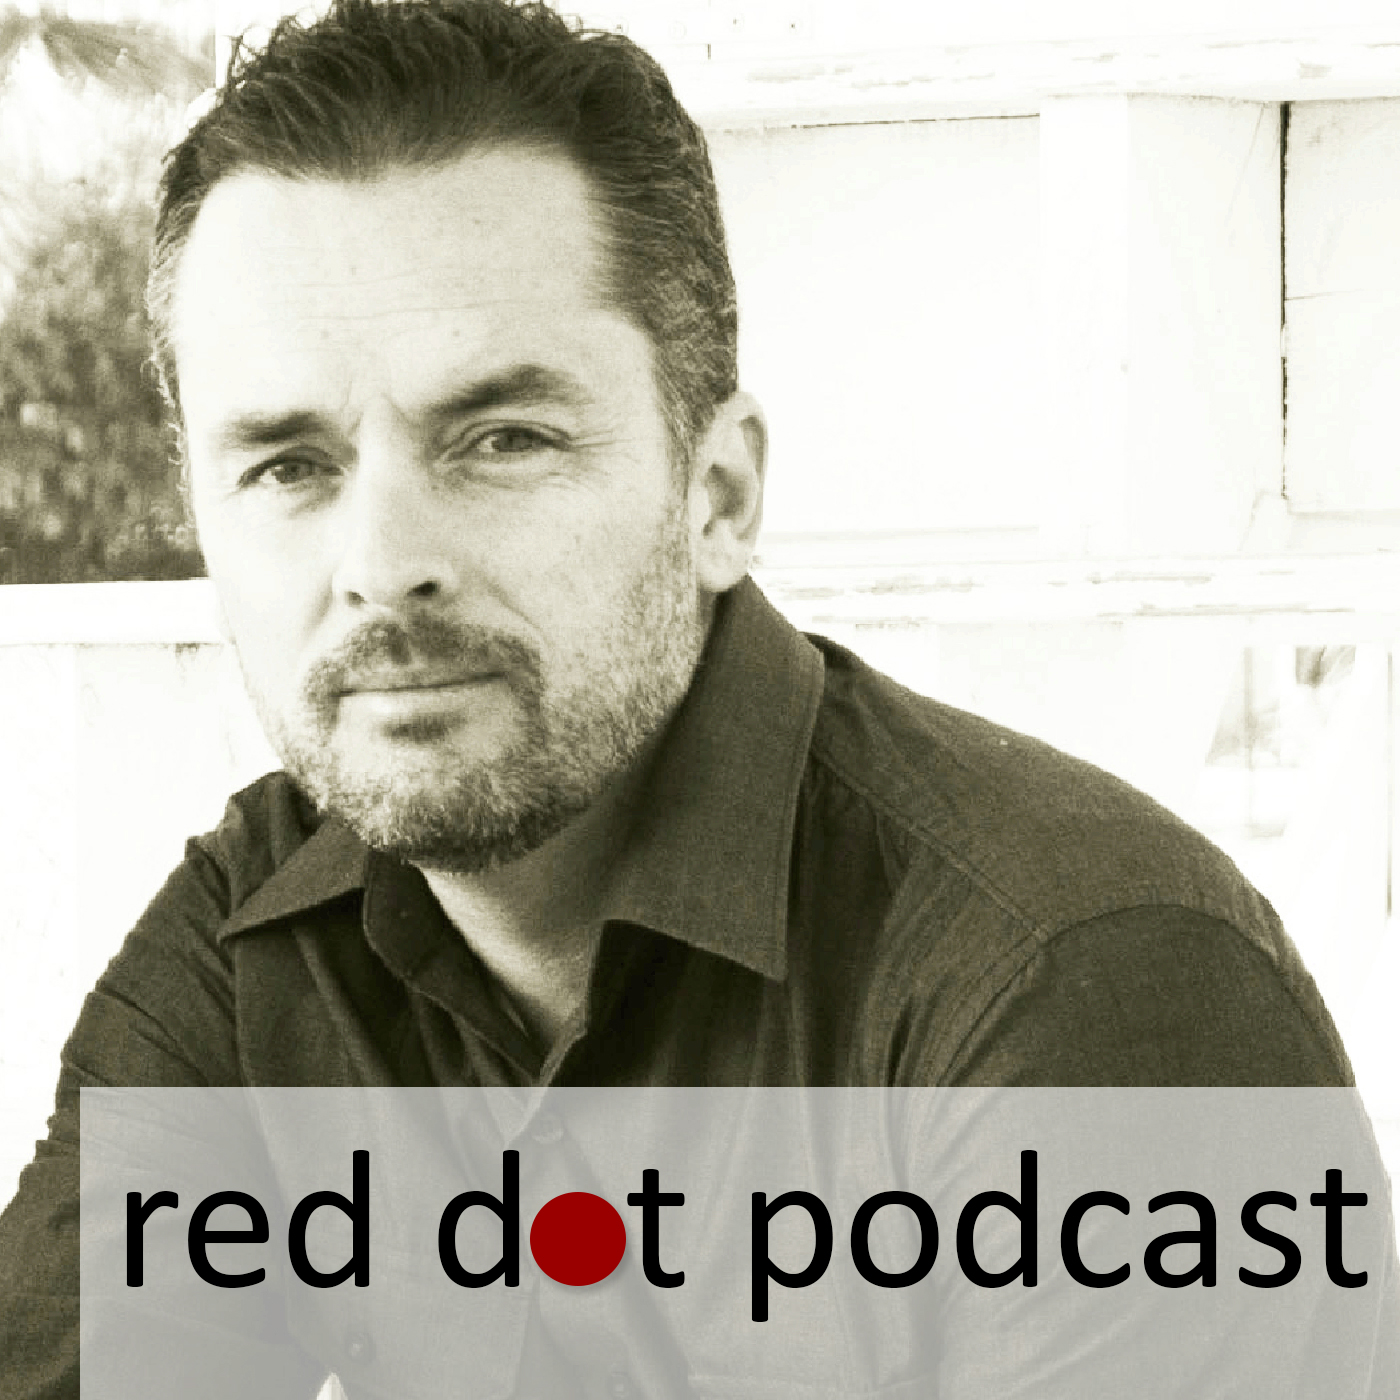 RedDot Podcast | Episode 012 | Supply, Demand, and Art Pricing